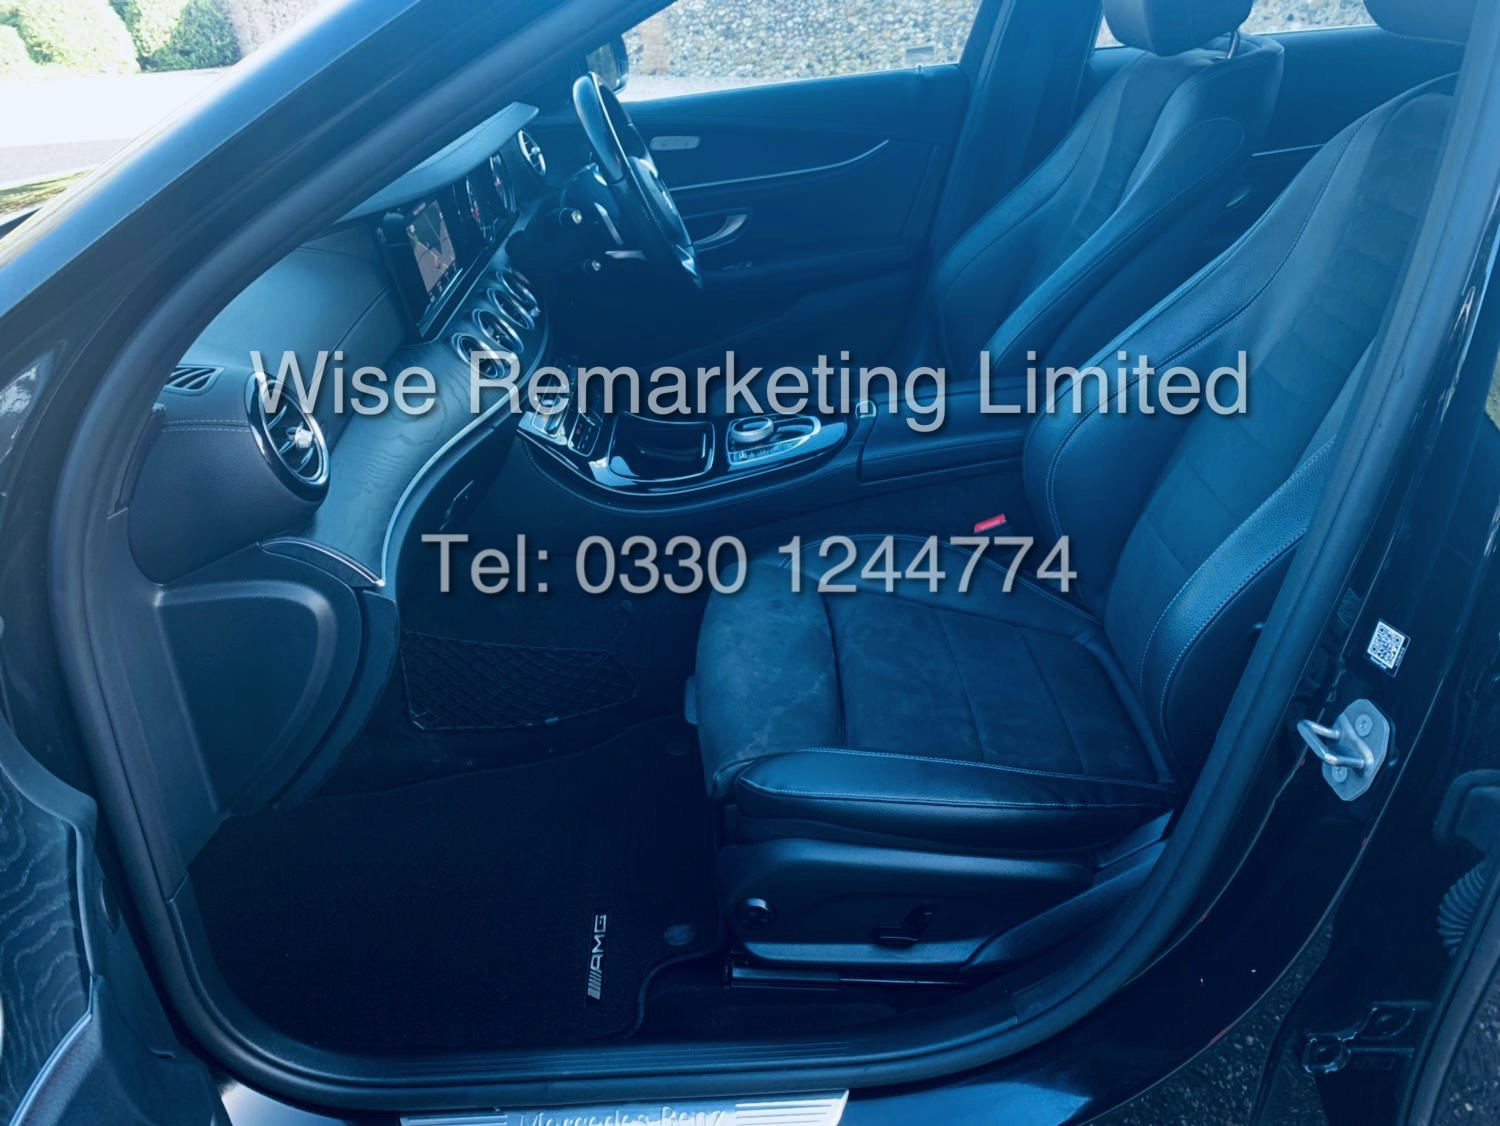 MERCEDES E CLASS ESTATE E220D AMG LINE 2017 / 9G -TRONIC / *LOW MILES* / 1 OWNER - Image 17 of 42